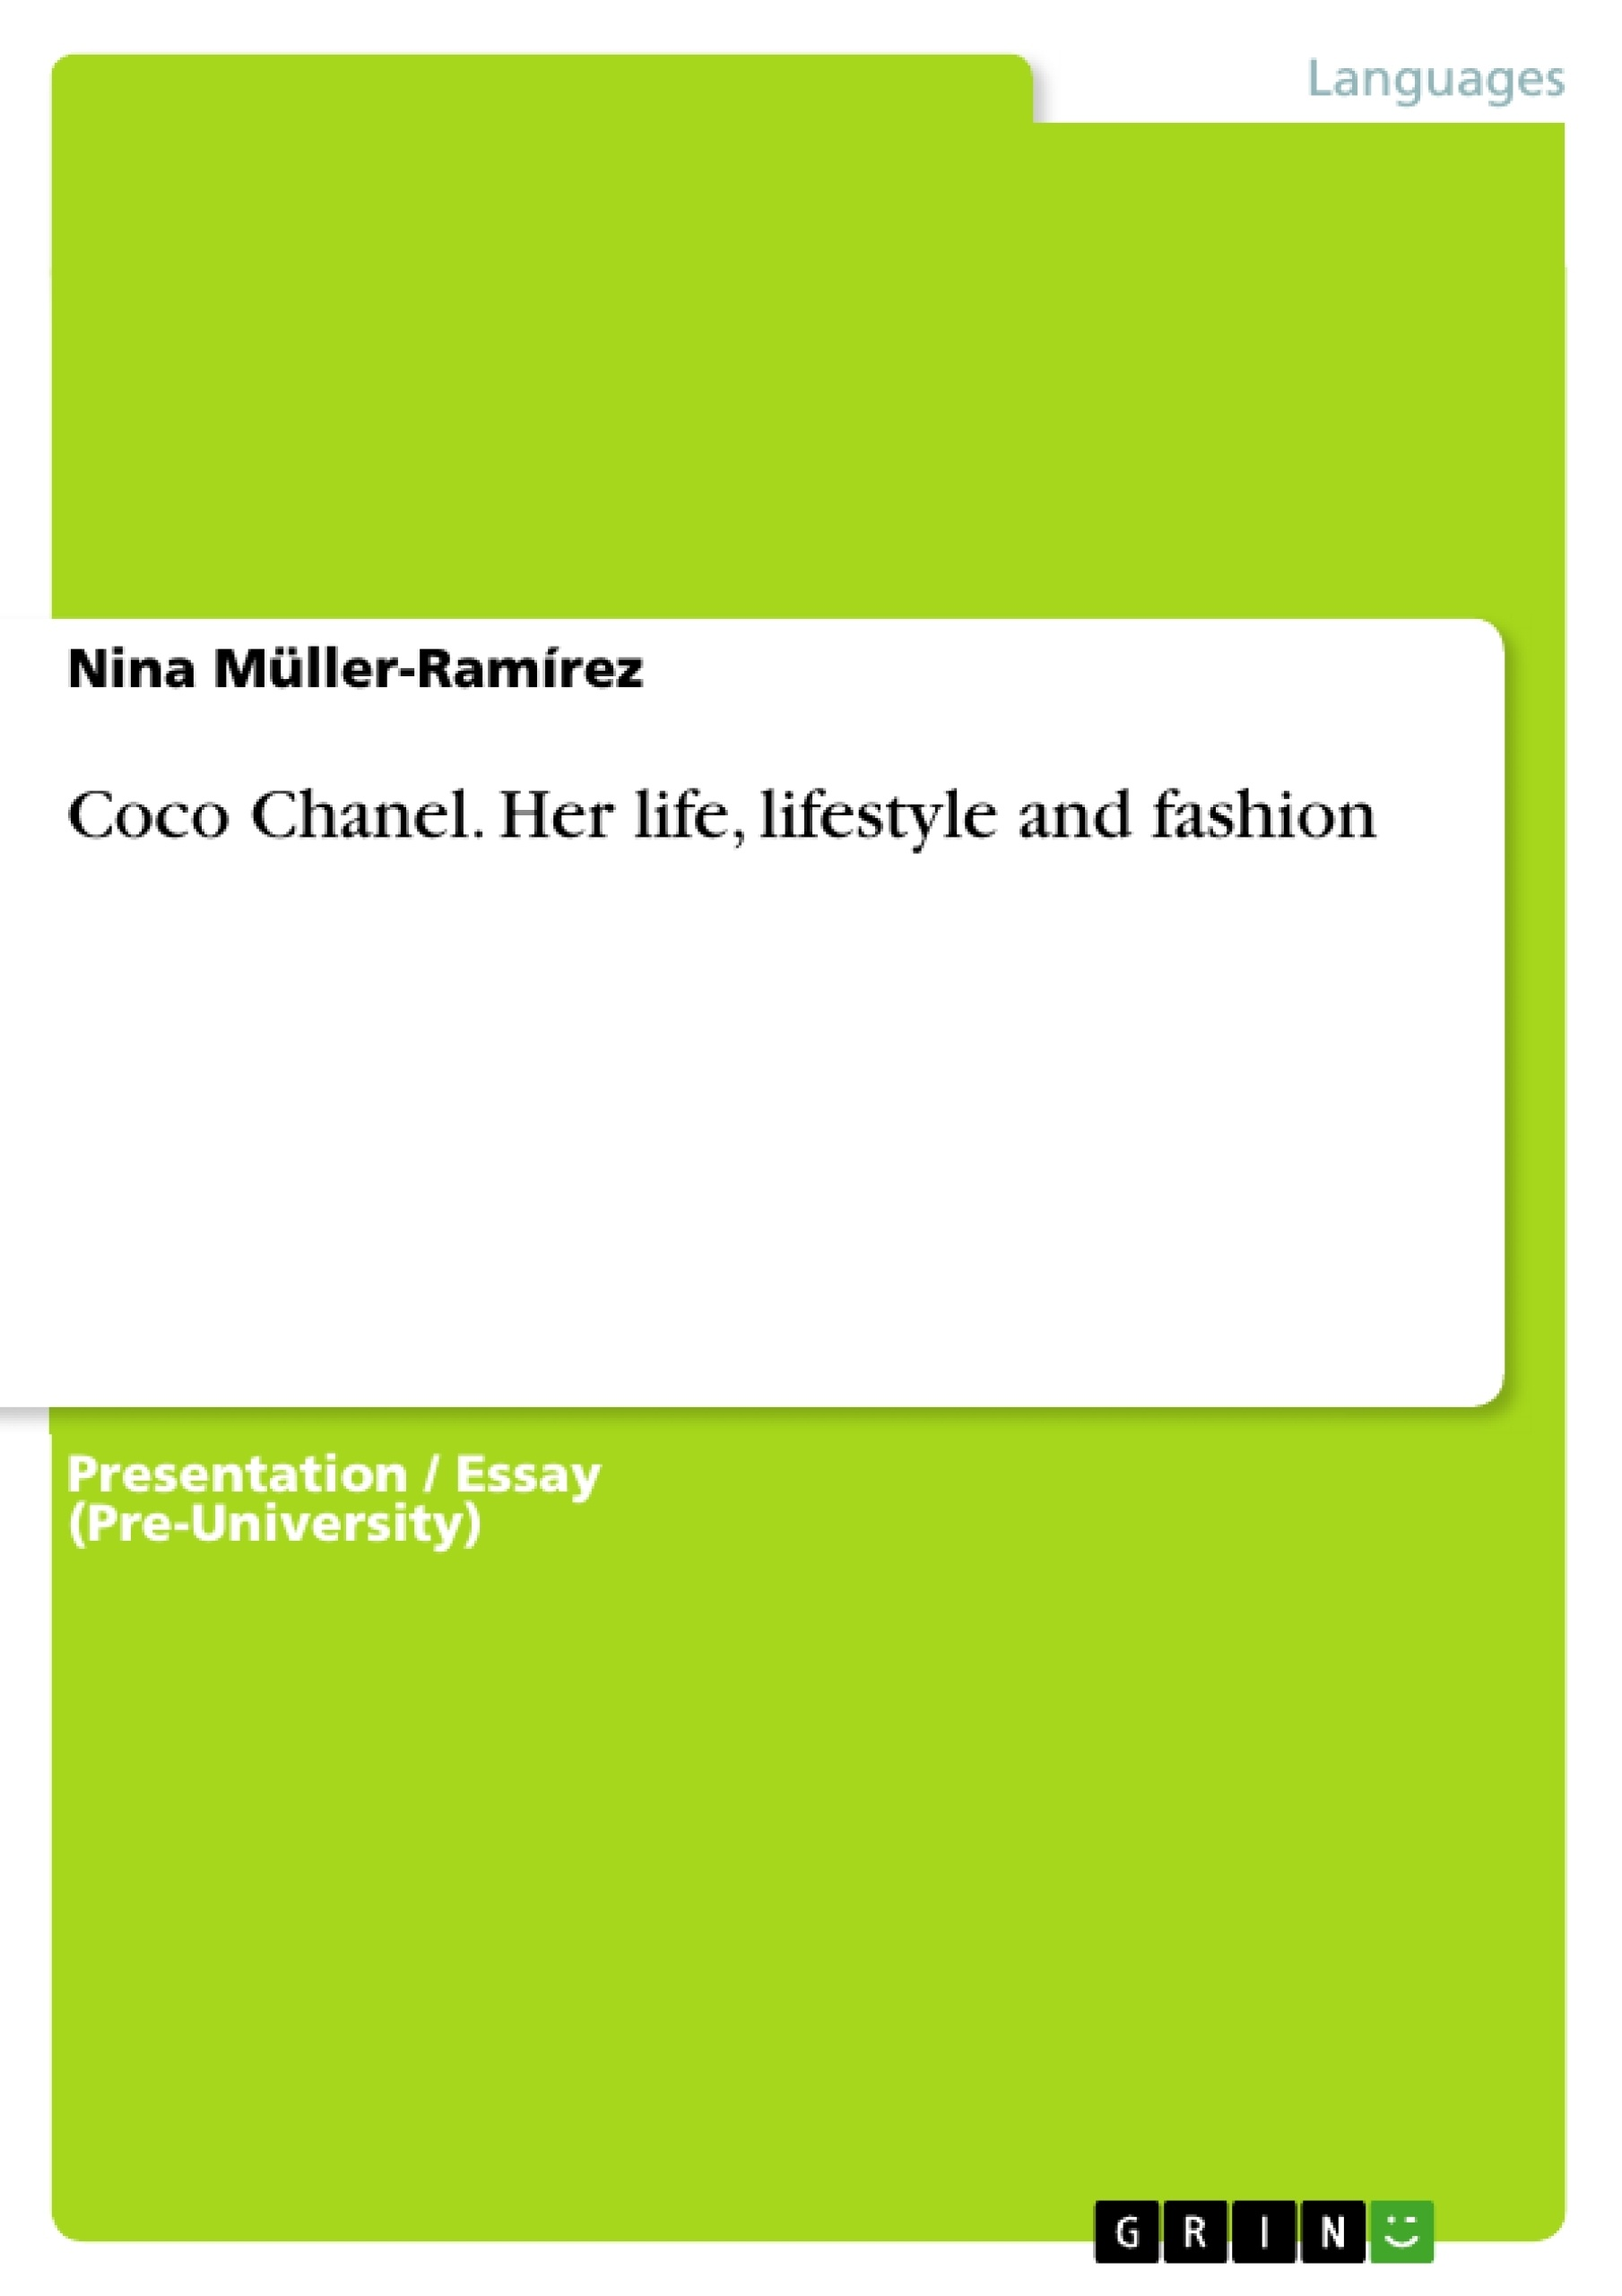 Title: Coco Chanel. Her life, lifestyle and fashion